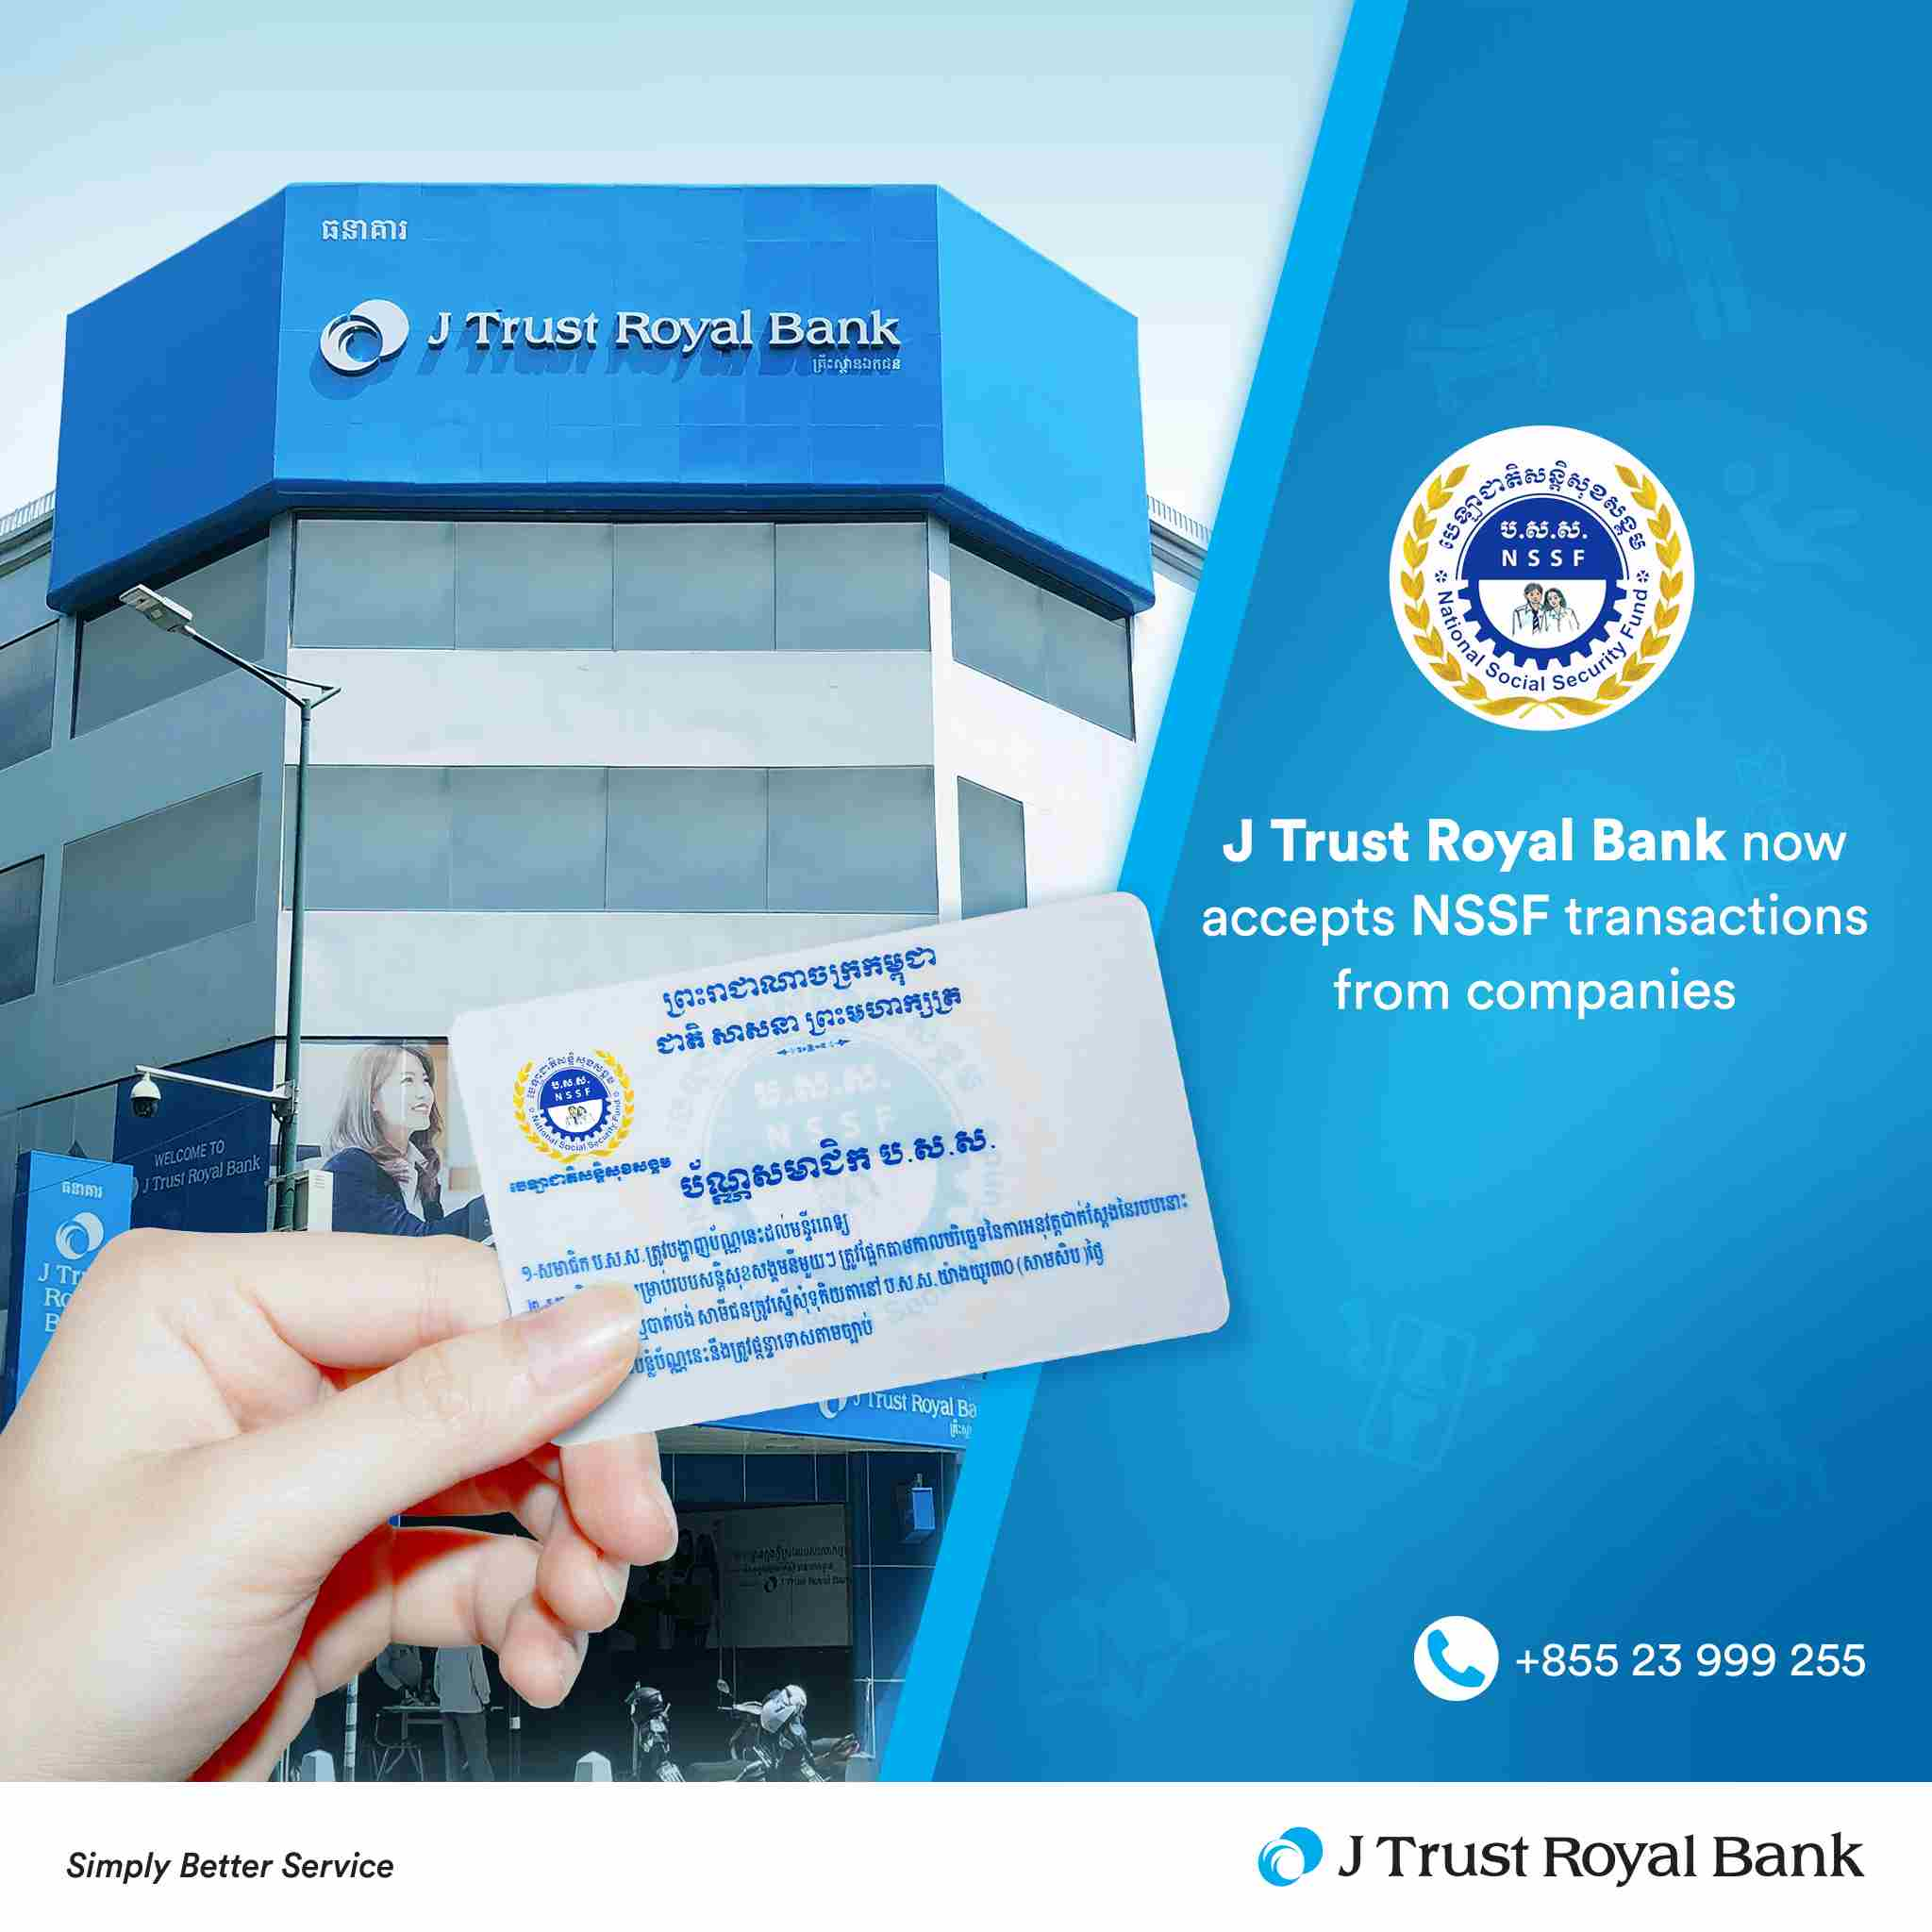 J Trust Royal Bank brings added convenience to  payment contributions to the National Social Security Fund (NSSF)